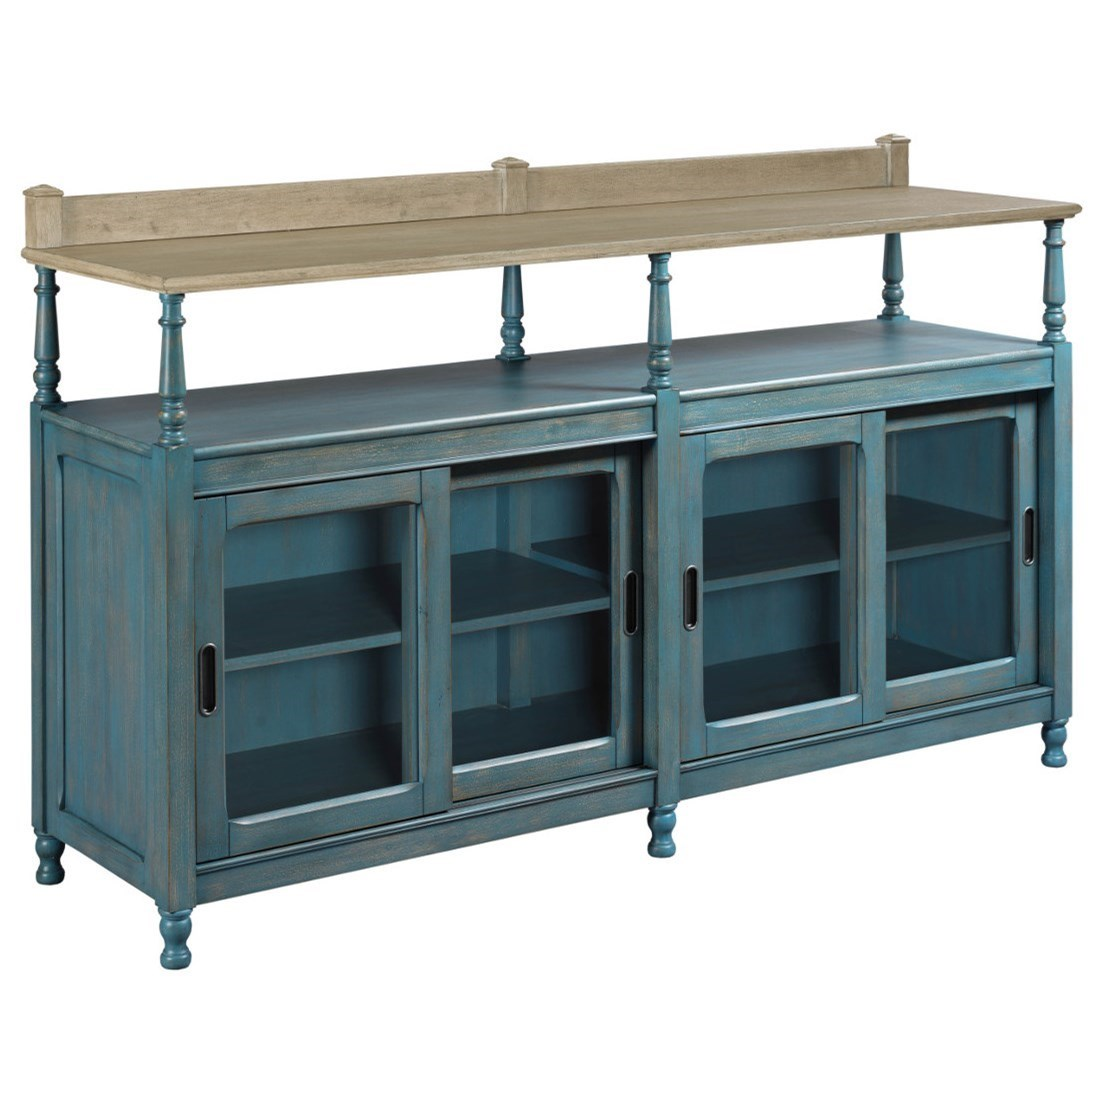 Litchfield 750 Credenza by American Drew at Johnny Janosik